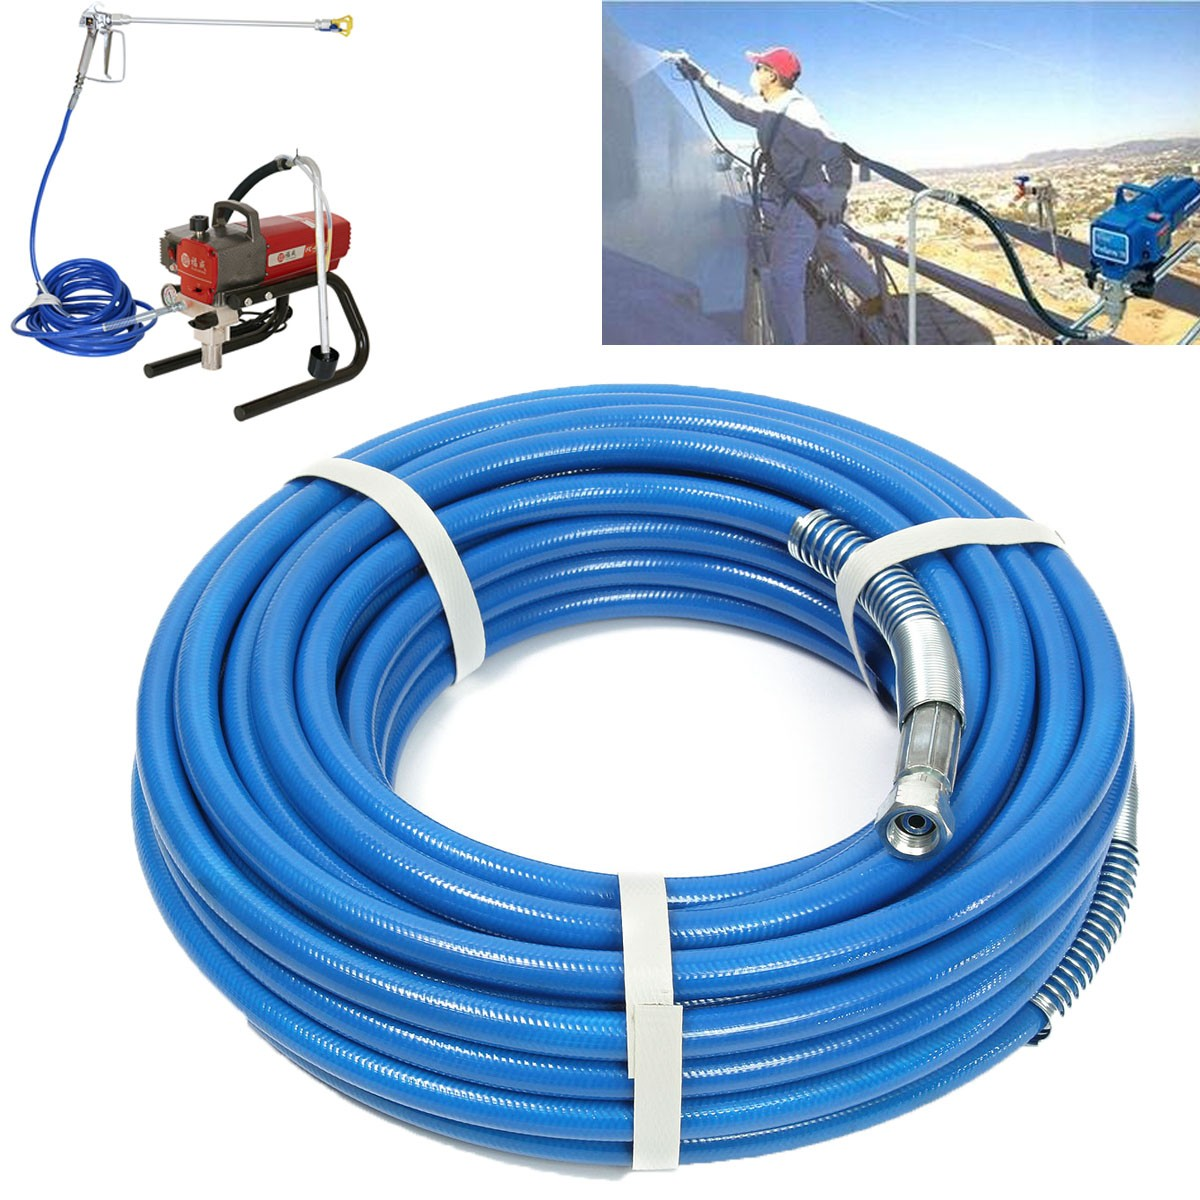 цена на 15m Airless Hose 5000PSI High Pressure Pipe Airless sprayer Airless Paint Hose For Sprayer Gun Sprayer Water